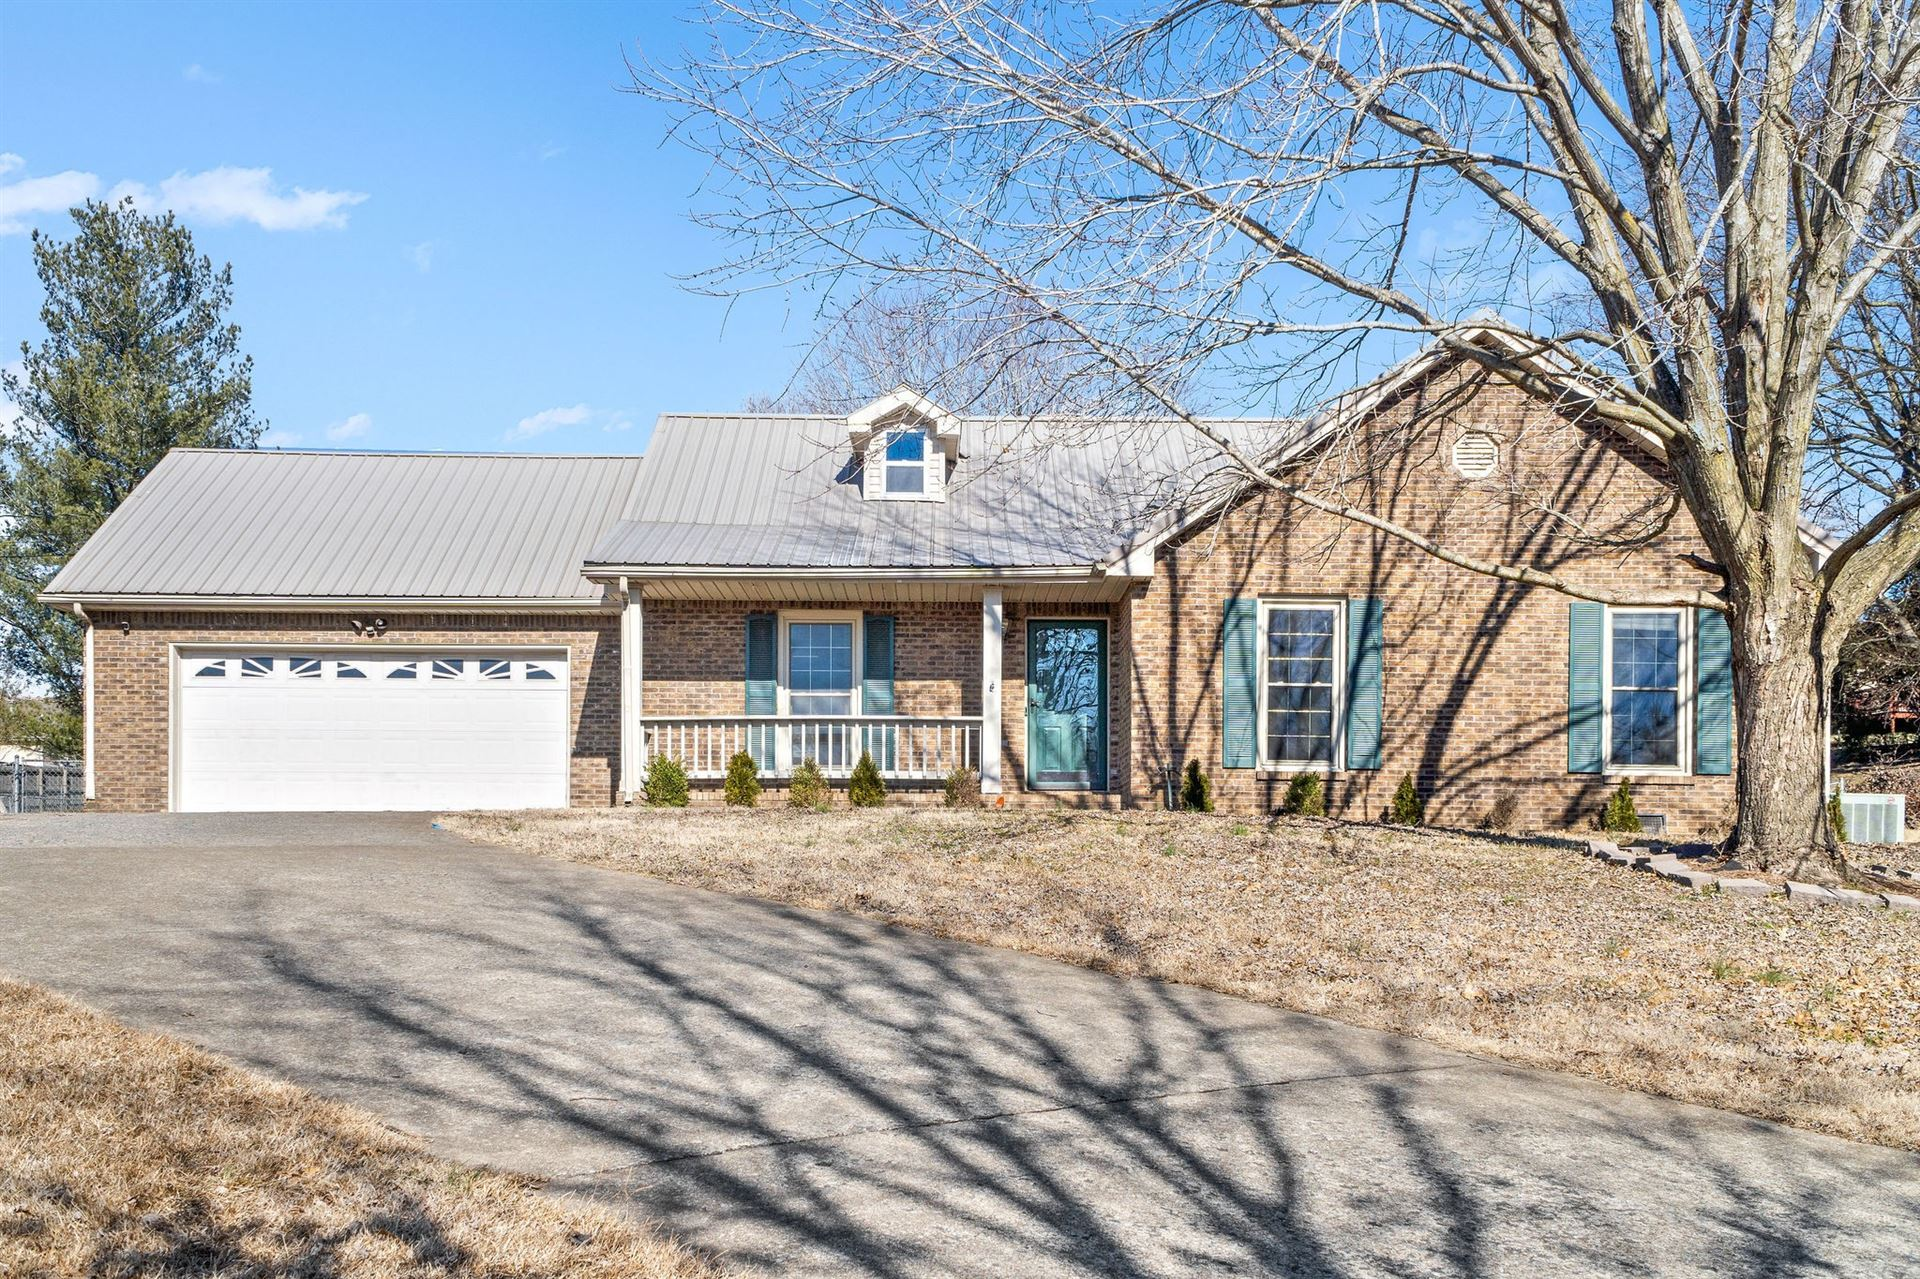 711 W Creek Dr, Clarksville, TN 37040 - MLS#: 2222669